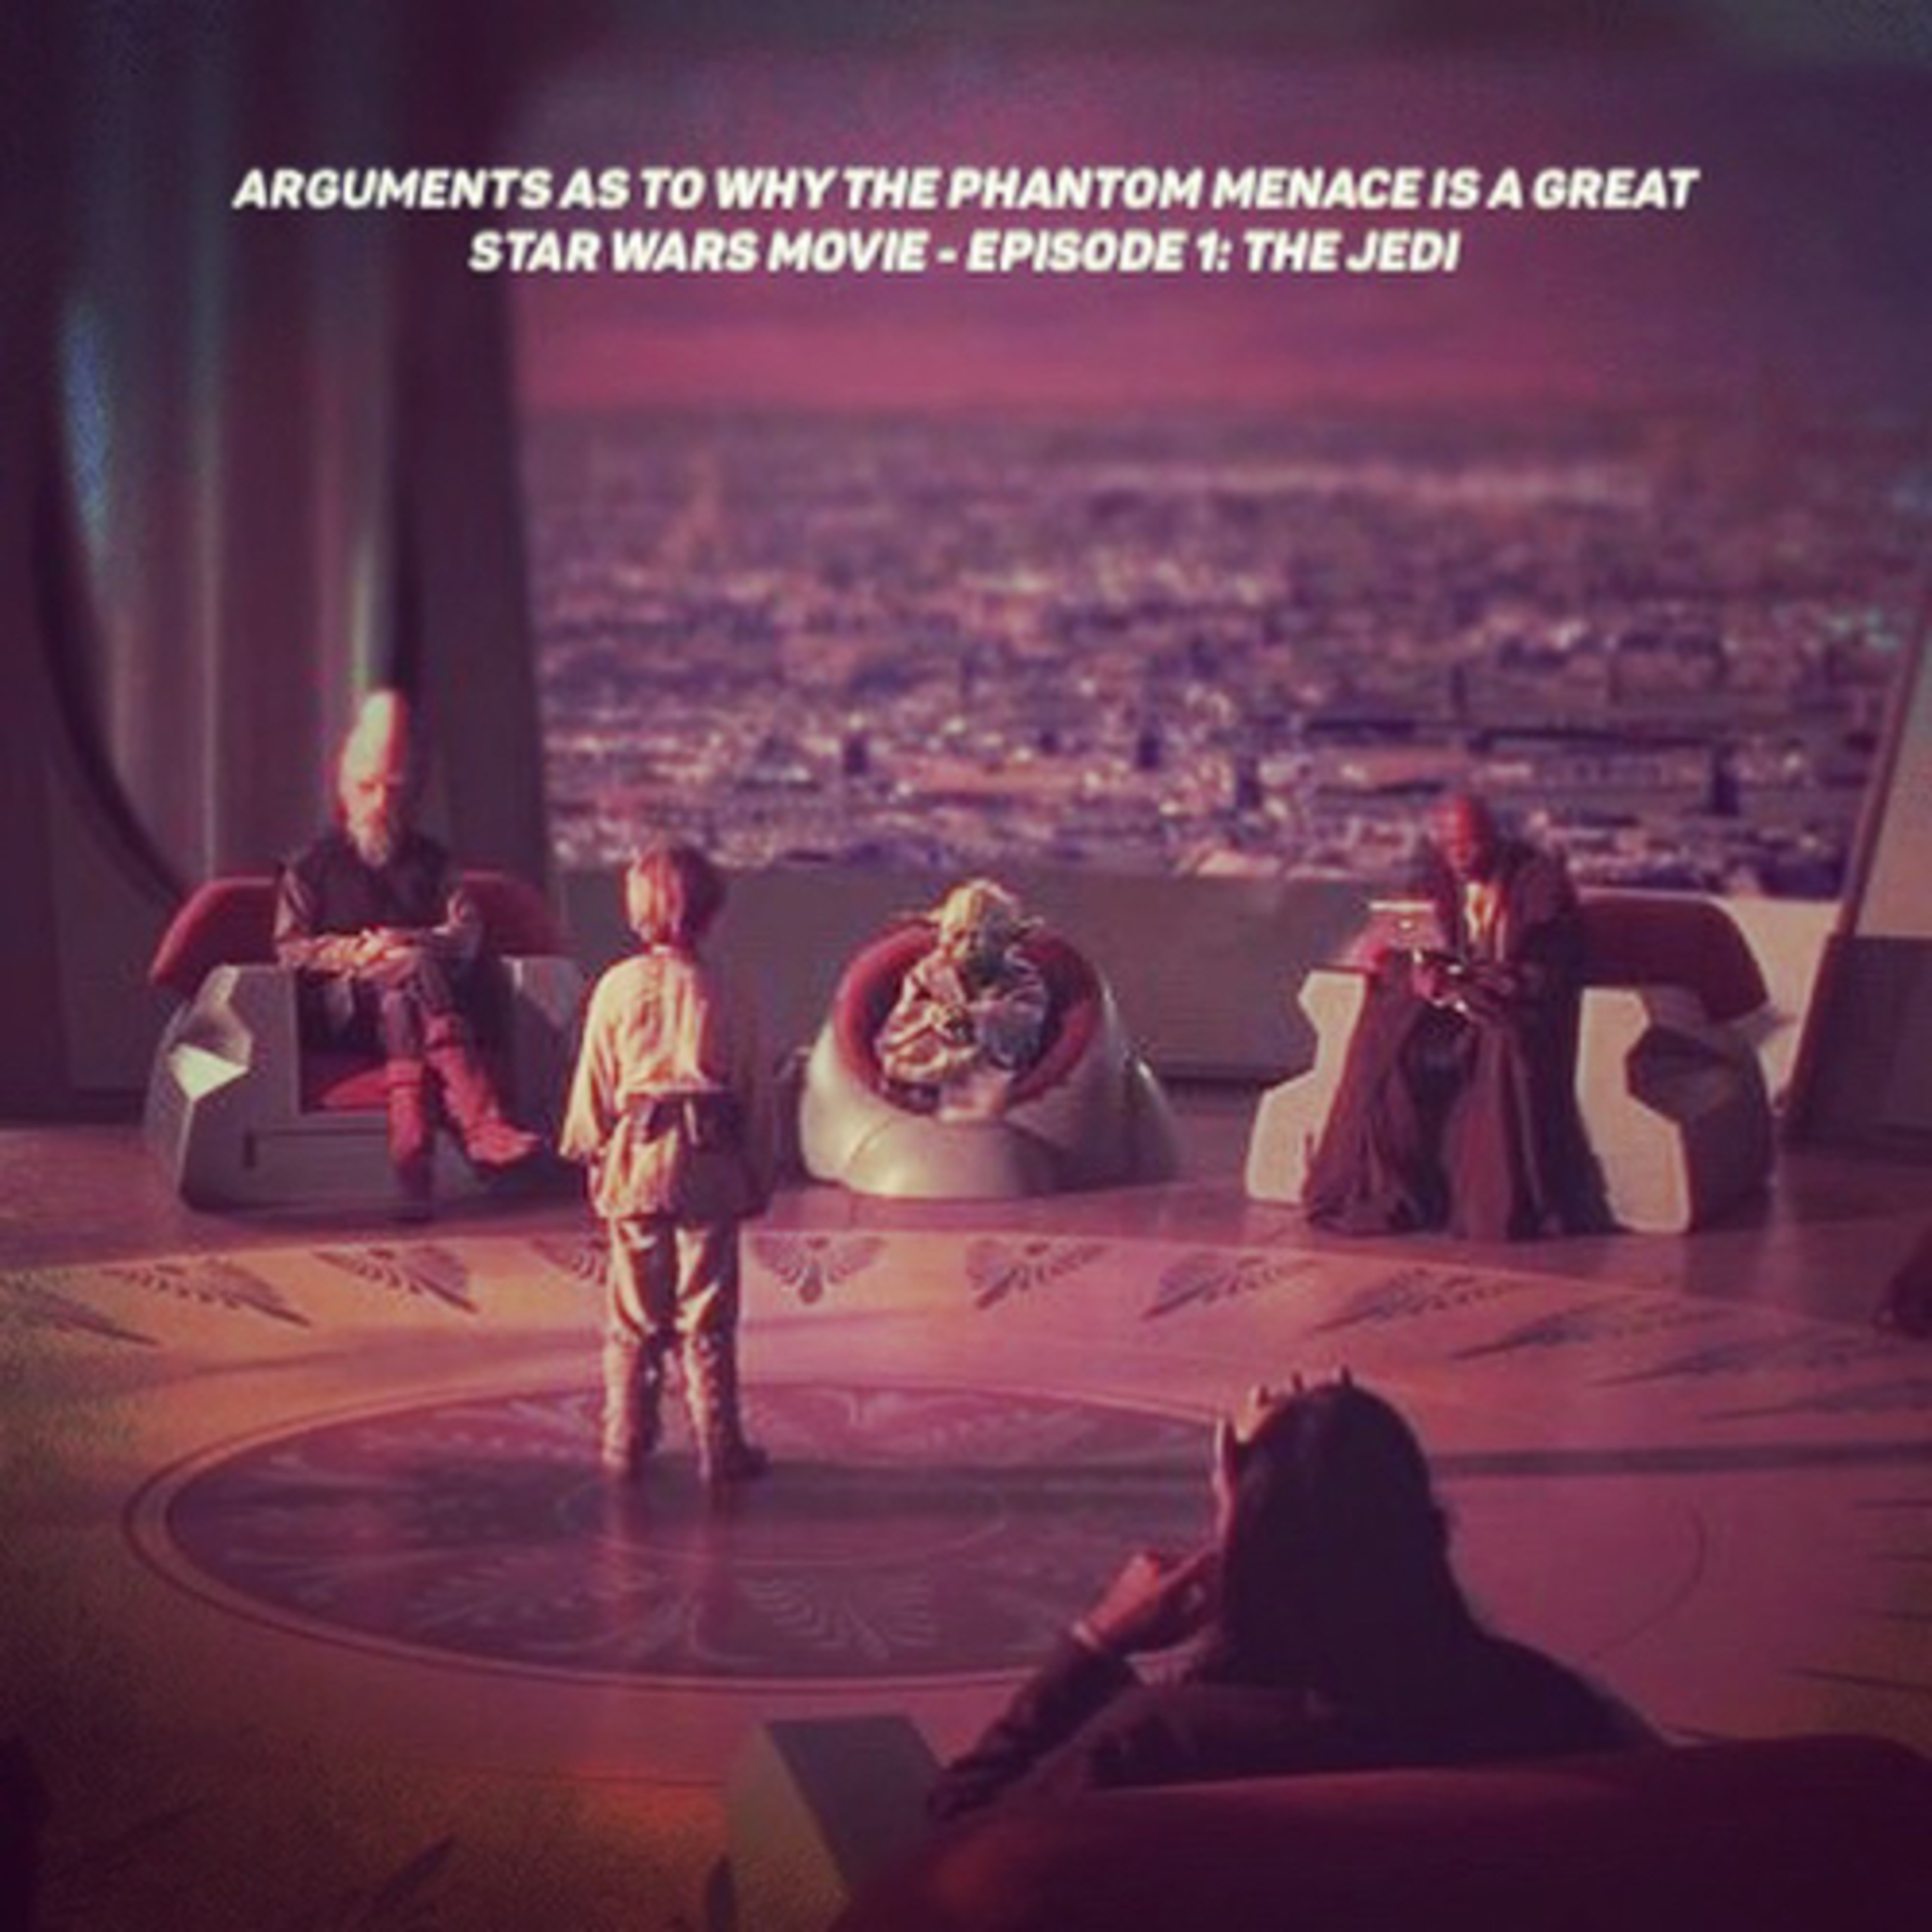 Arguments As To Why The Phantom Menace is a Great Star Wars Movie - Episode 1: The Jedi